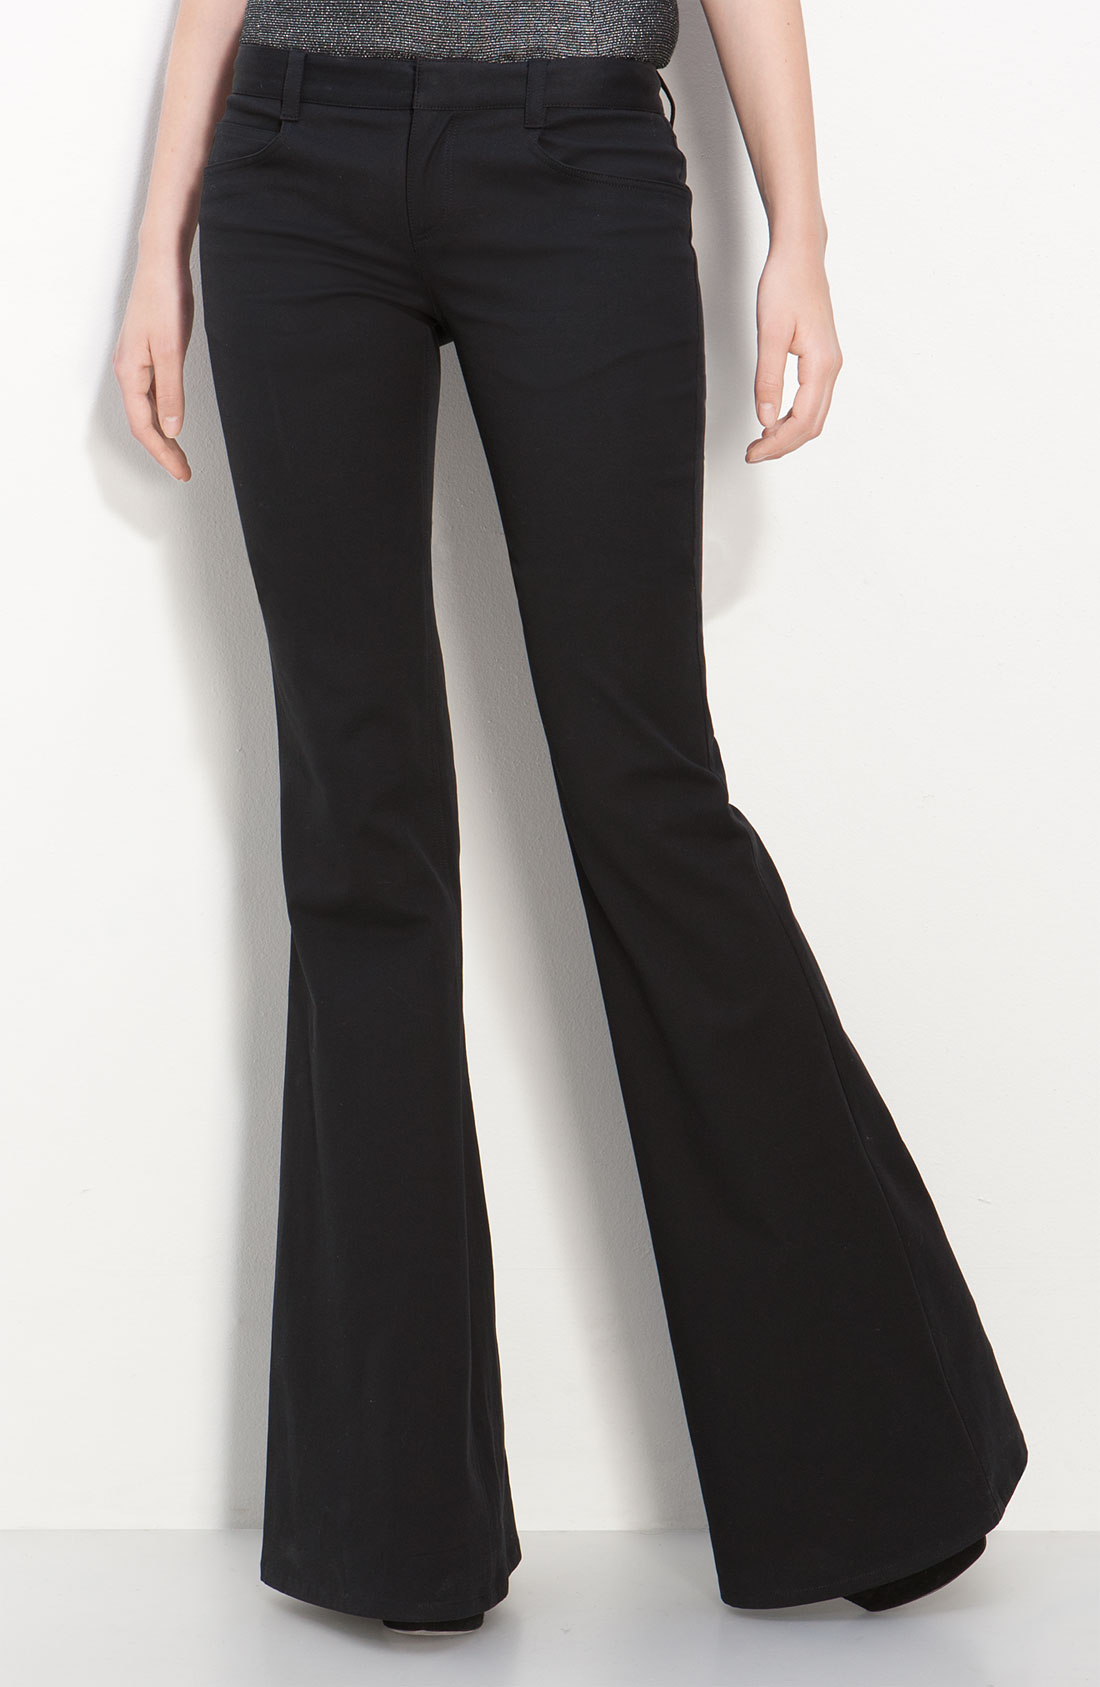 A more streamlined cut means the leg line of this pant is closer to your own leg line, fitted through the hip and thigh. Size Tip If you prefer your scrubs to have a little more breathing room, try ordering one size larger than you typically would in a scrub top or pant with a junior fit.